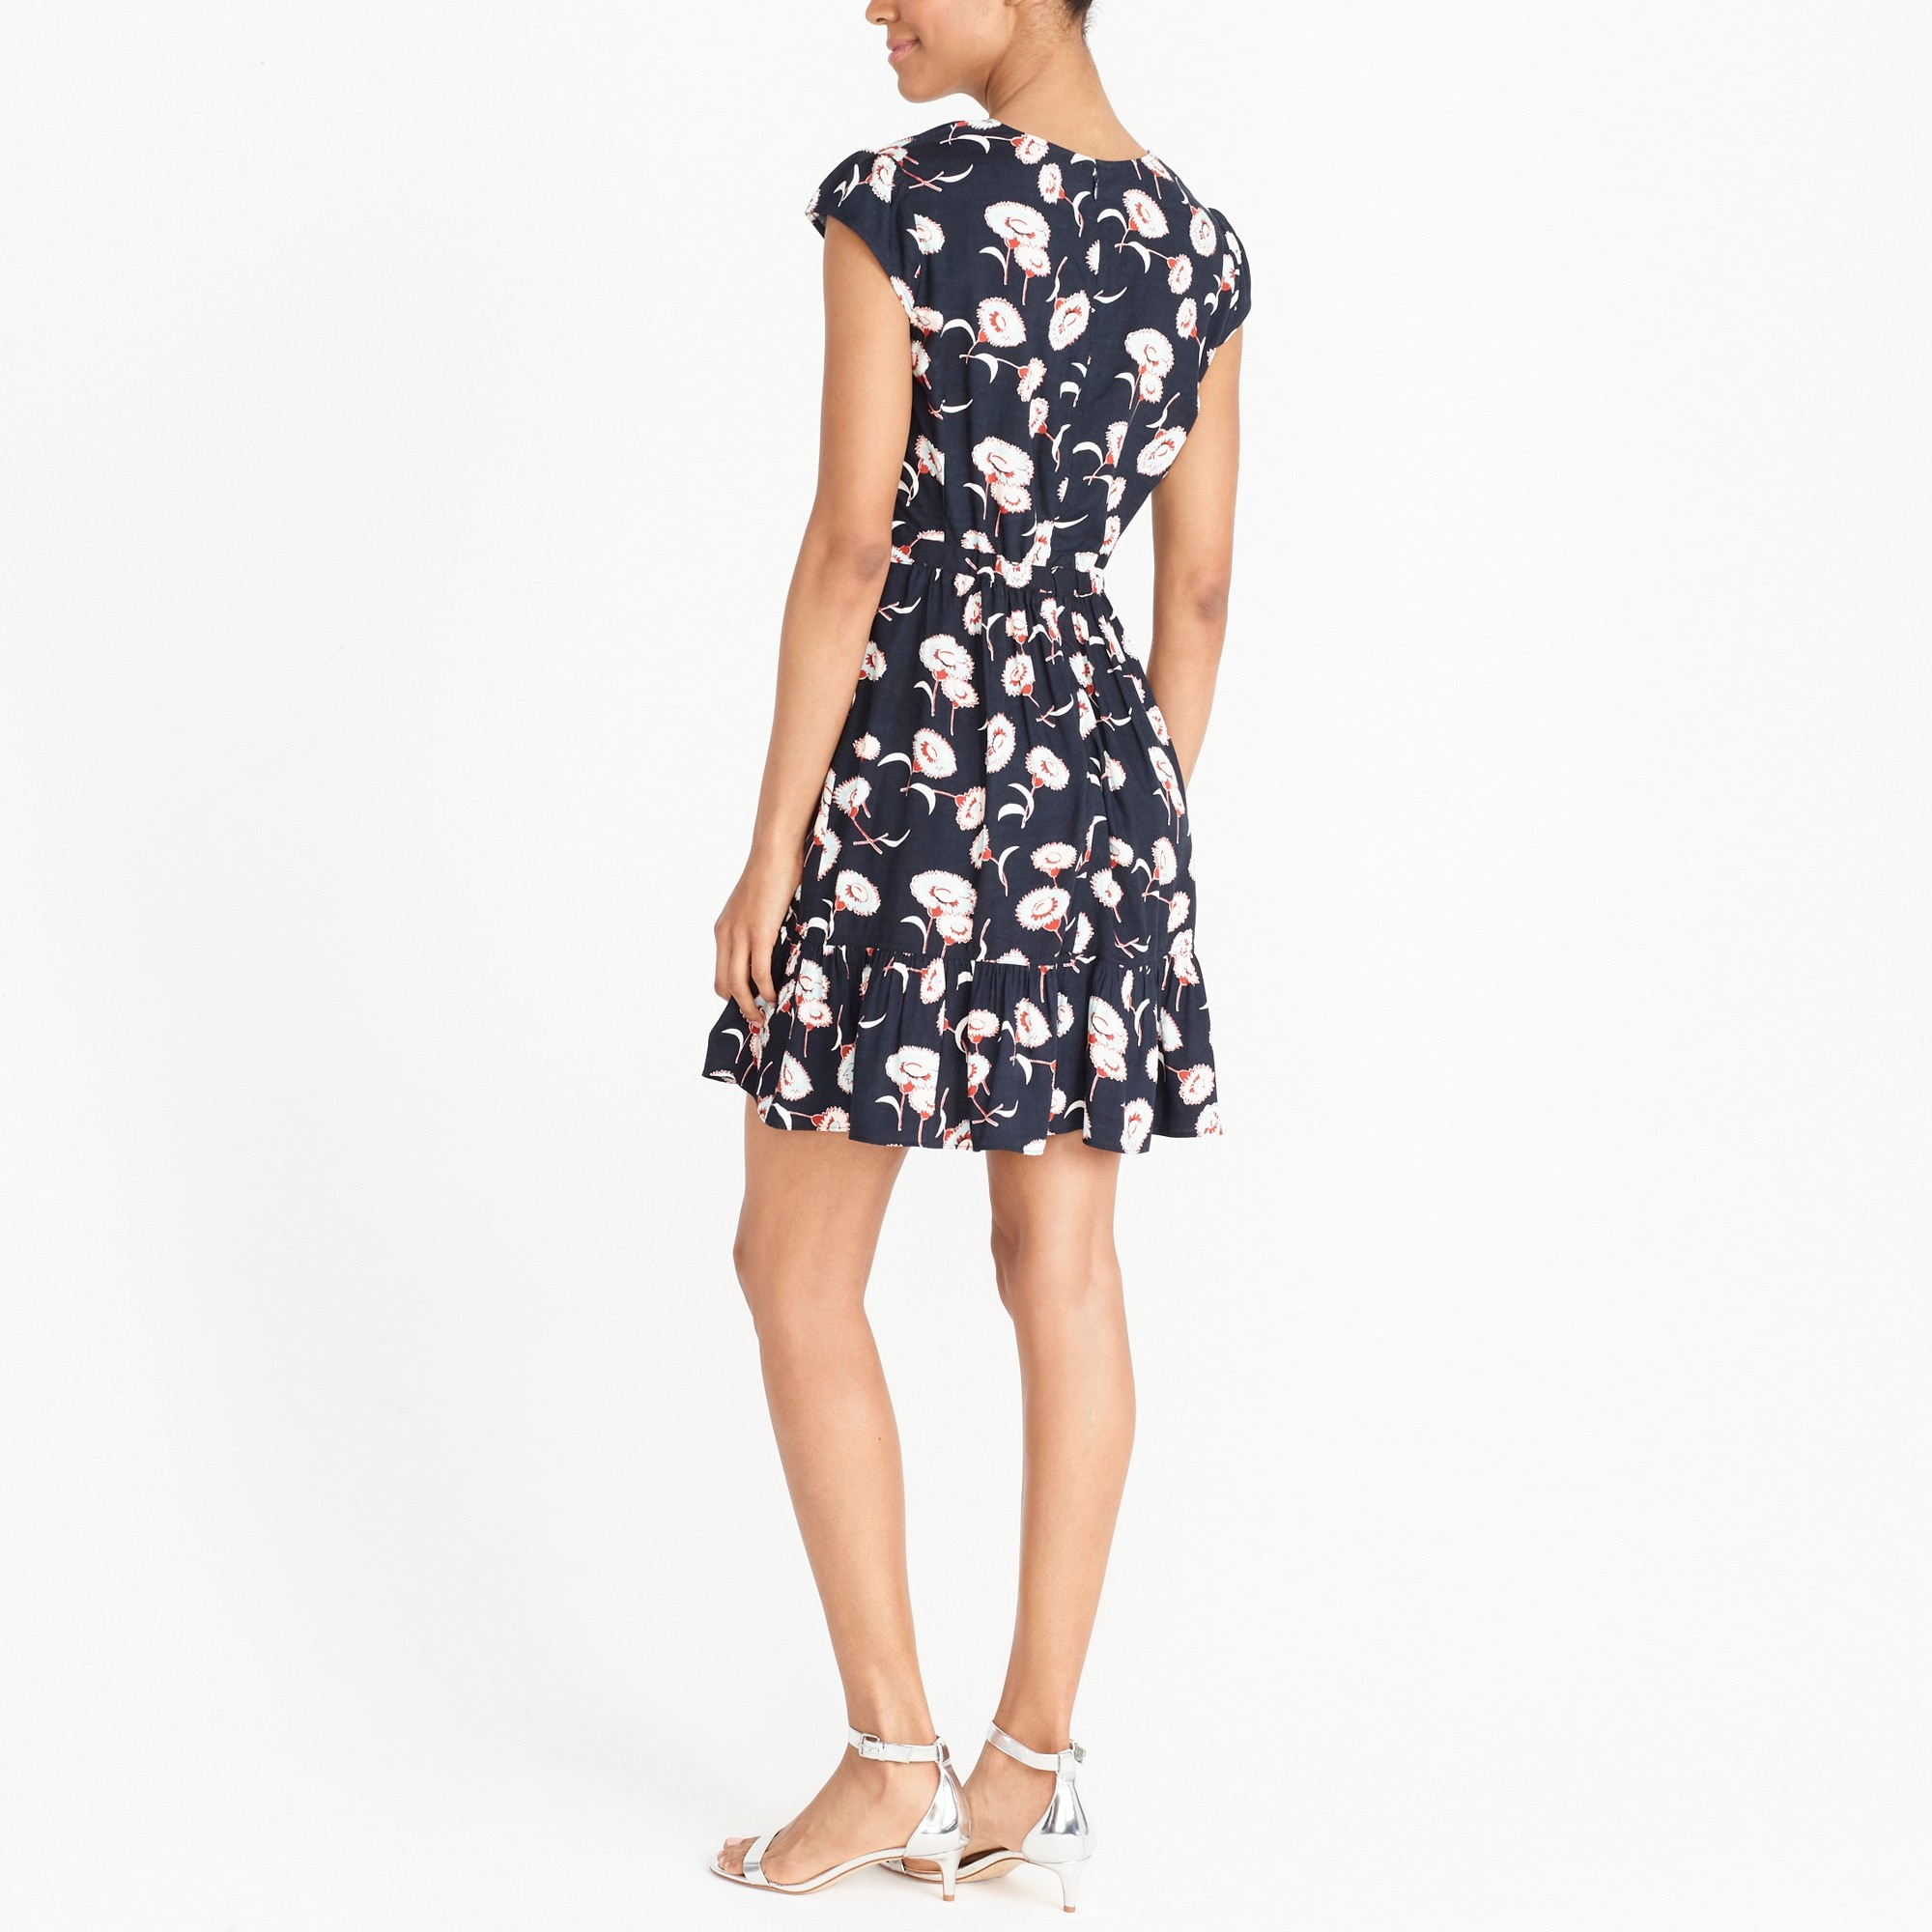 Image 2 for J.Crew Mercantile faux-wrap mini dress